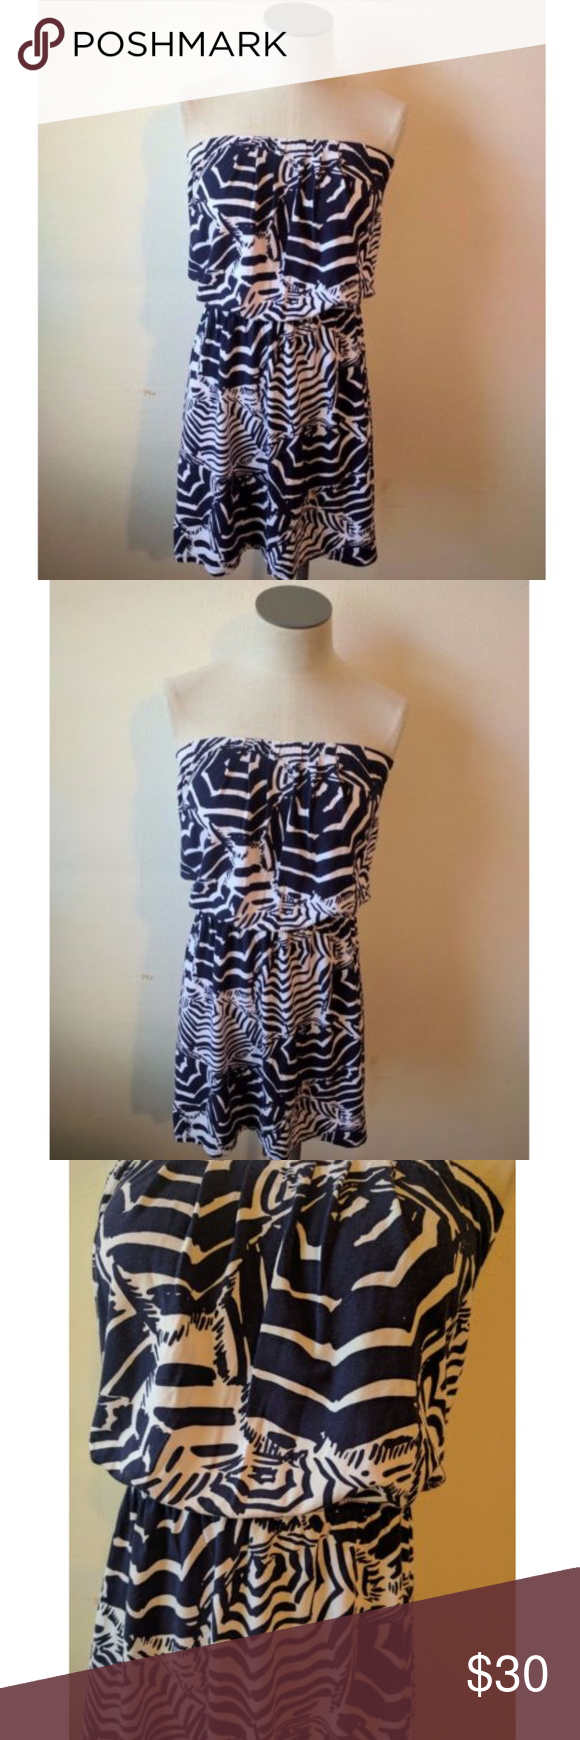 Lilly pulitzer oh cabana boy xs navy blue dress navy blue dresses